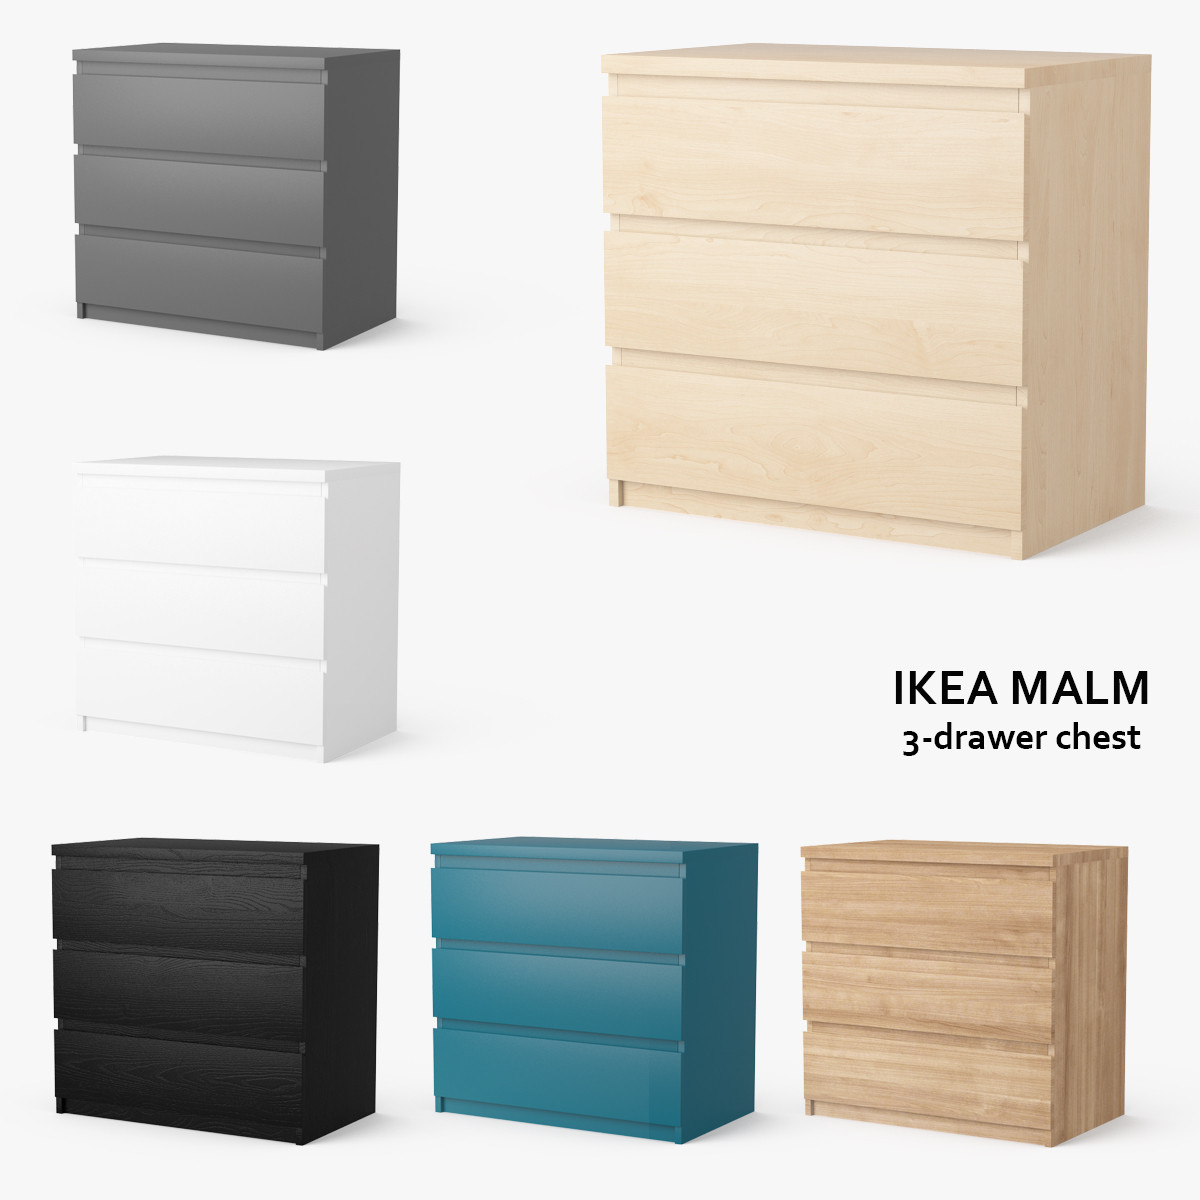 Ikea Malm Chest With 3 28 Images Malm Chest Of 3